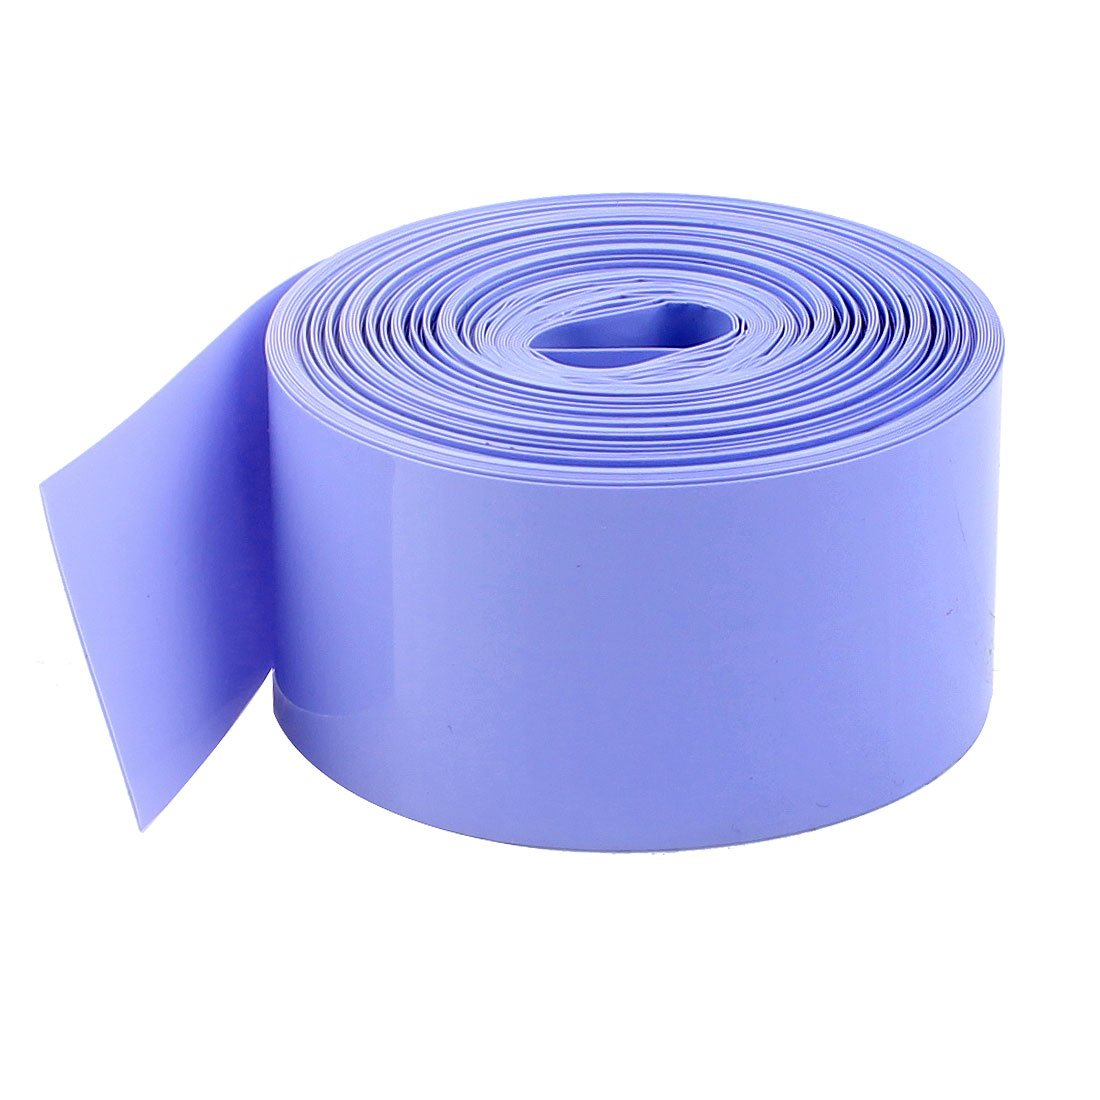 sourcingmap® 29.5mm/18.5mm PVC Heat Shrink Tubing Wrap 10m for 18650 18500 Battery a15012900ux0455